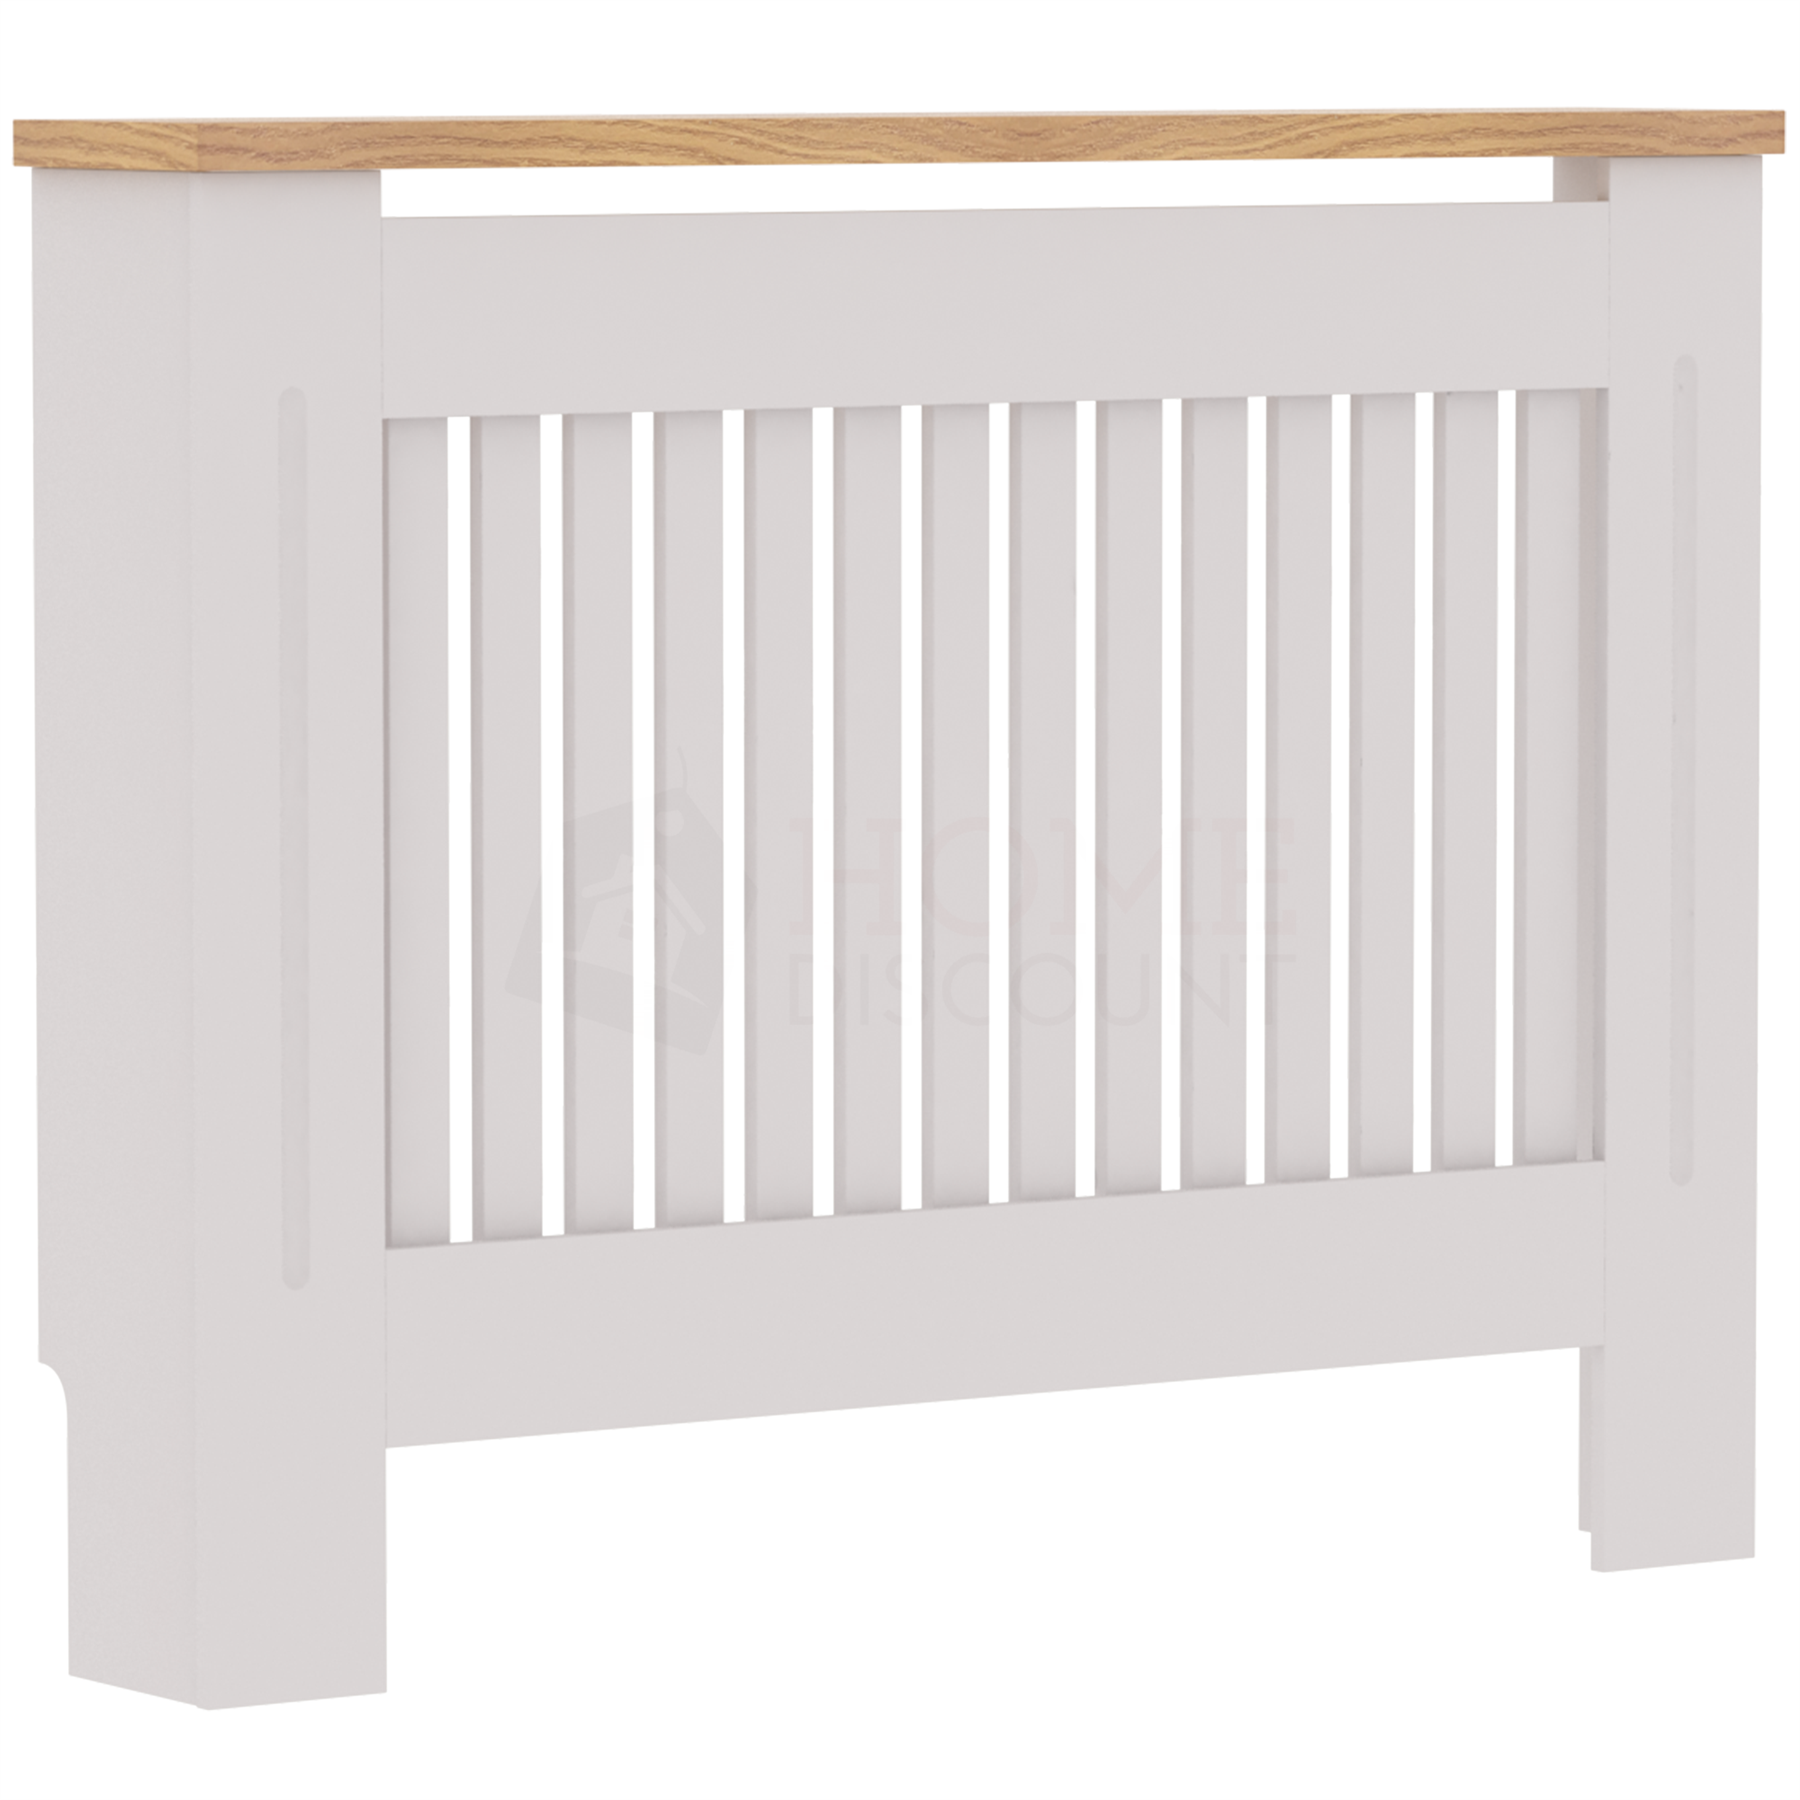 Radiateur-Housse-Blanc-inachevee-MODERNE-BOIS-TRADITIONNELLE-Grill-cabinet-furniture miniature 17